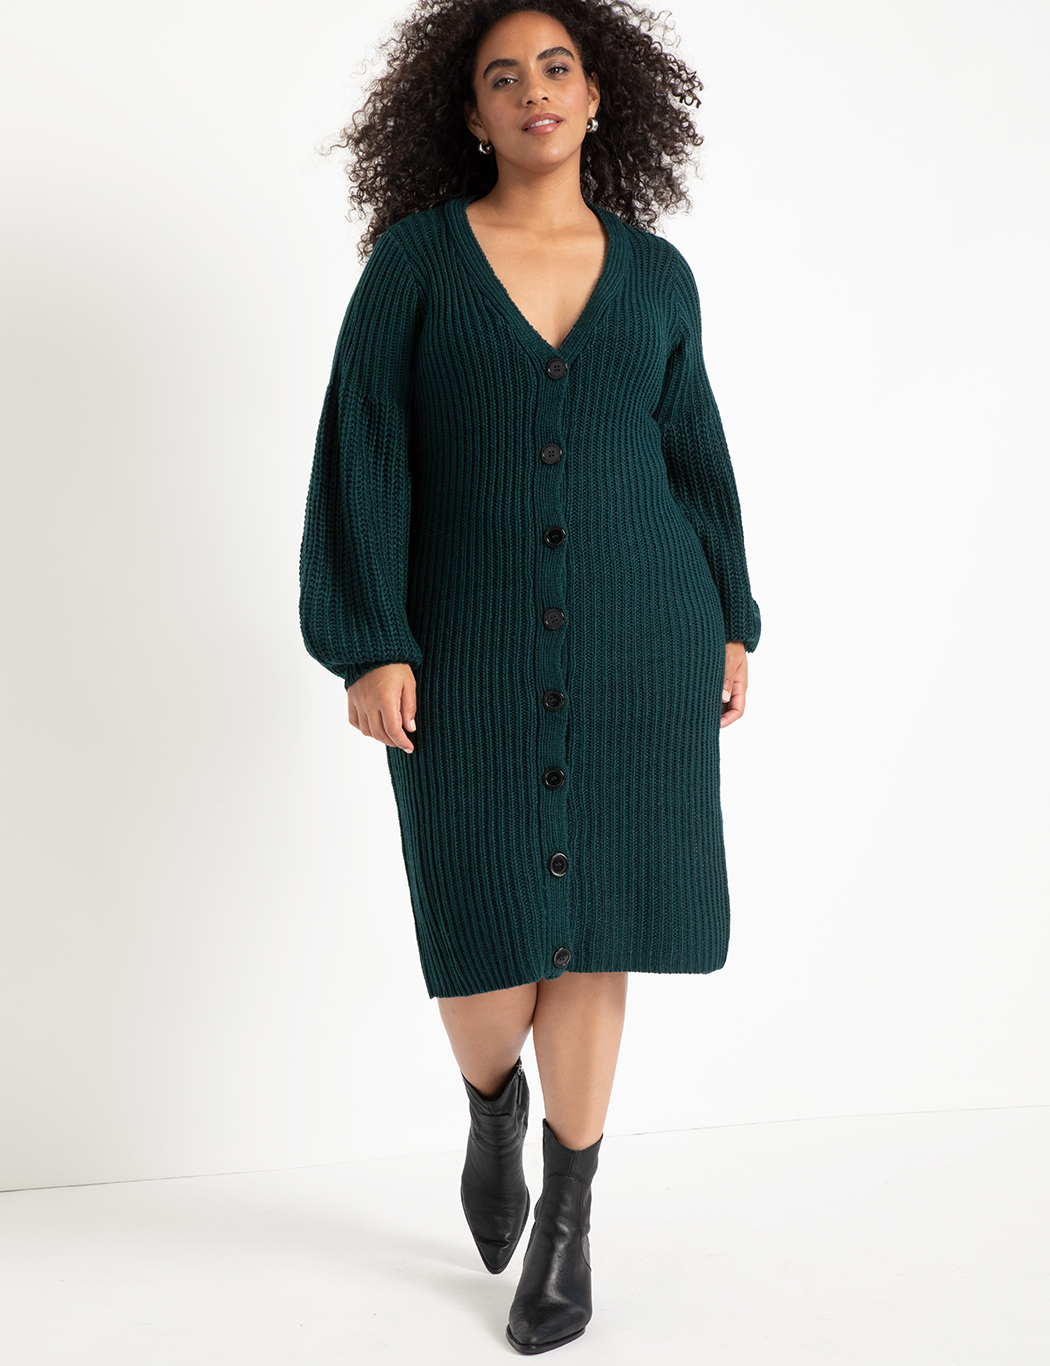 Cardigan Sweater Dress 12